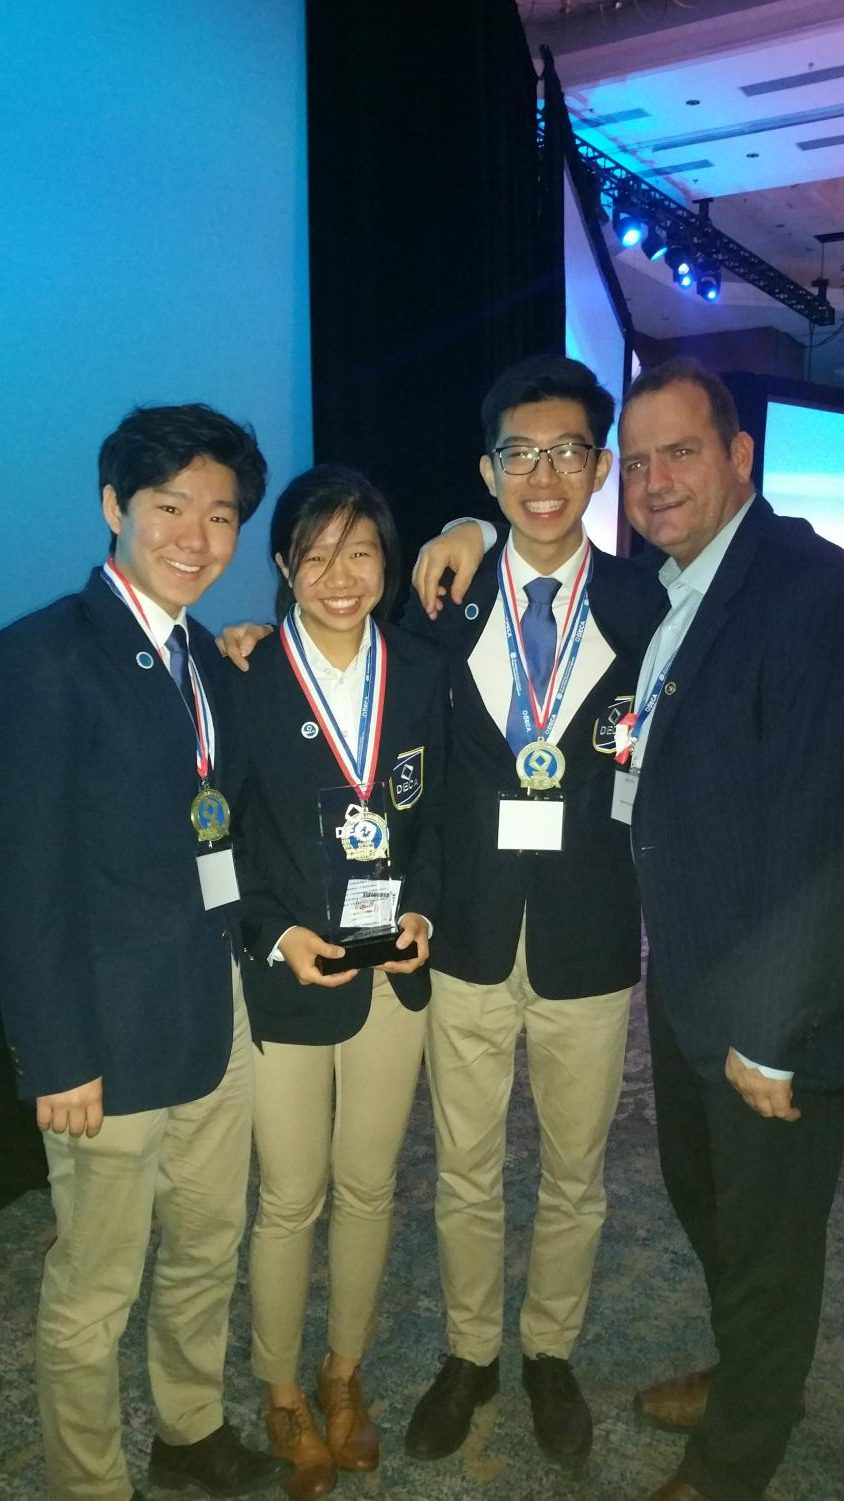 ICDC+qualifiers%2C+Ian+Chiu+%2719%2C+James+Joh+%2719%2C+and+Anna+Chiu+%2721+pose+with+sponsor%2C+Jeffery+Siler%2C+after+they+received+their+award.